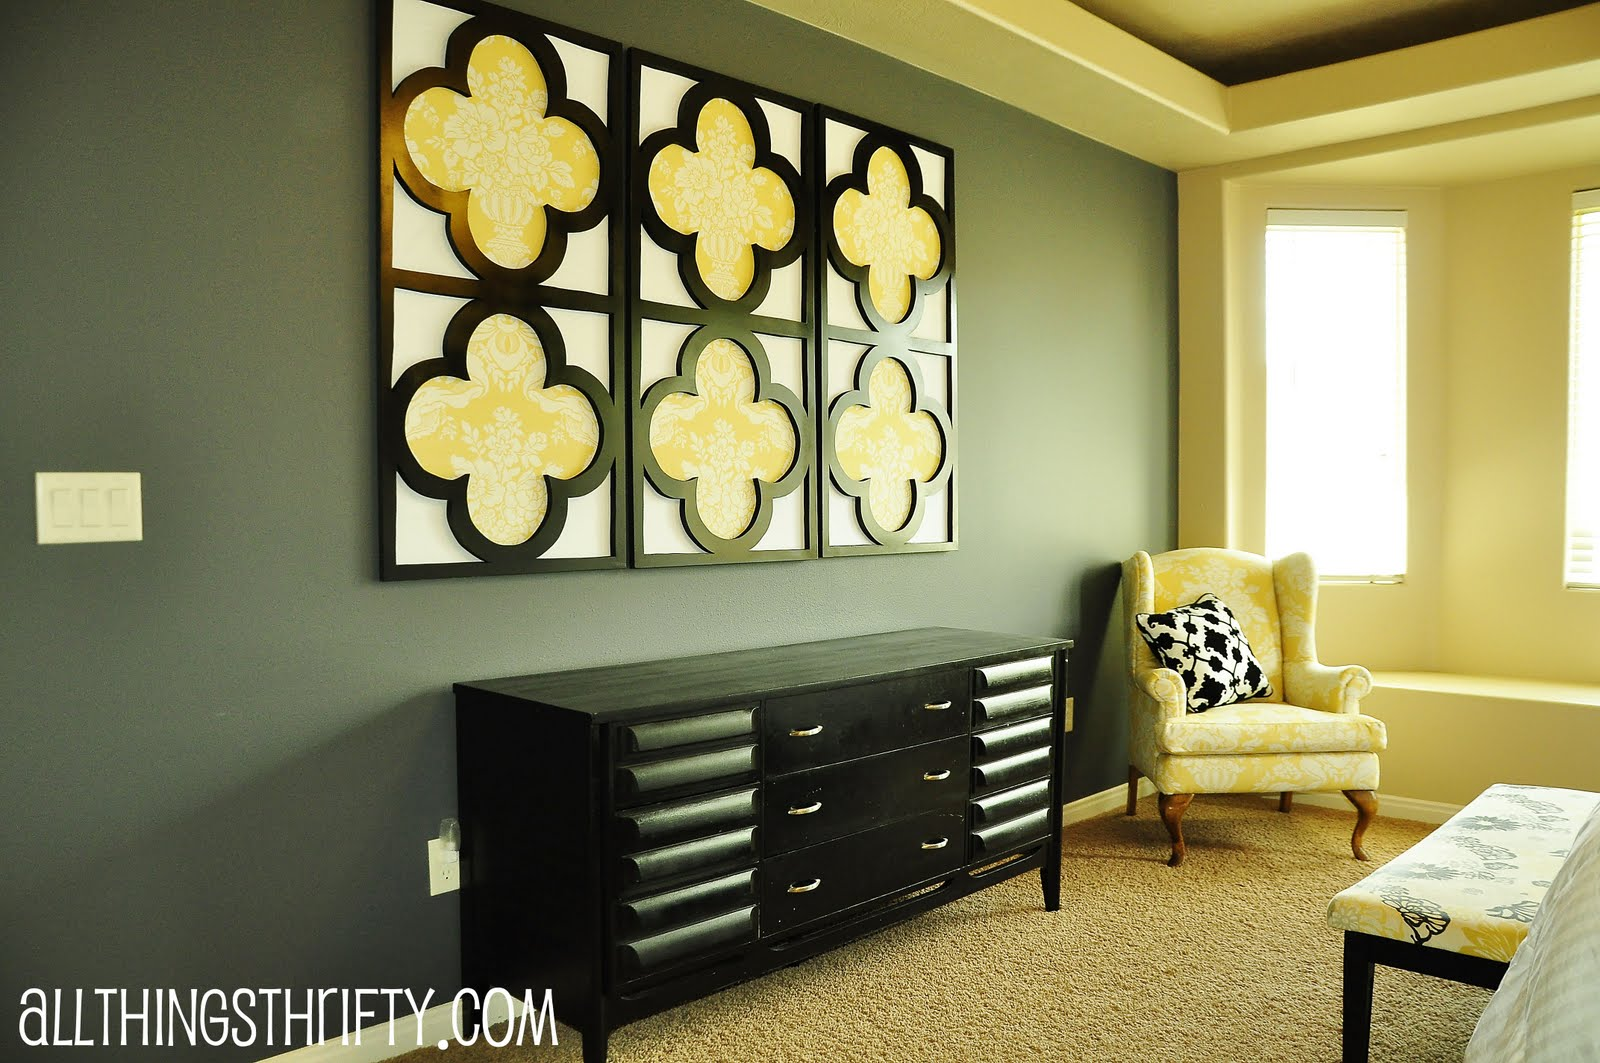 Tutorial quatrefoil diy decorative wall art for Diy wall mural ideas